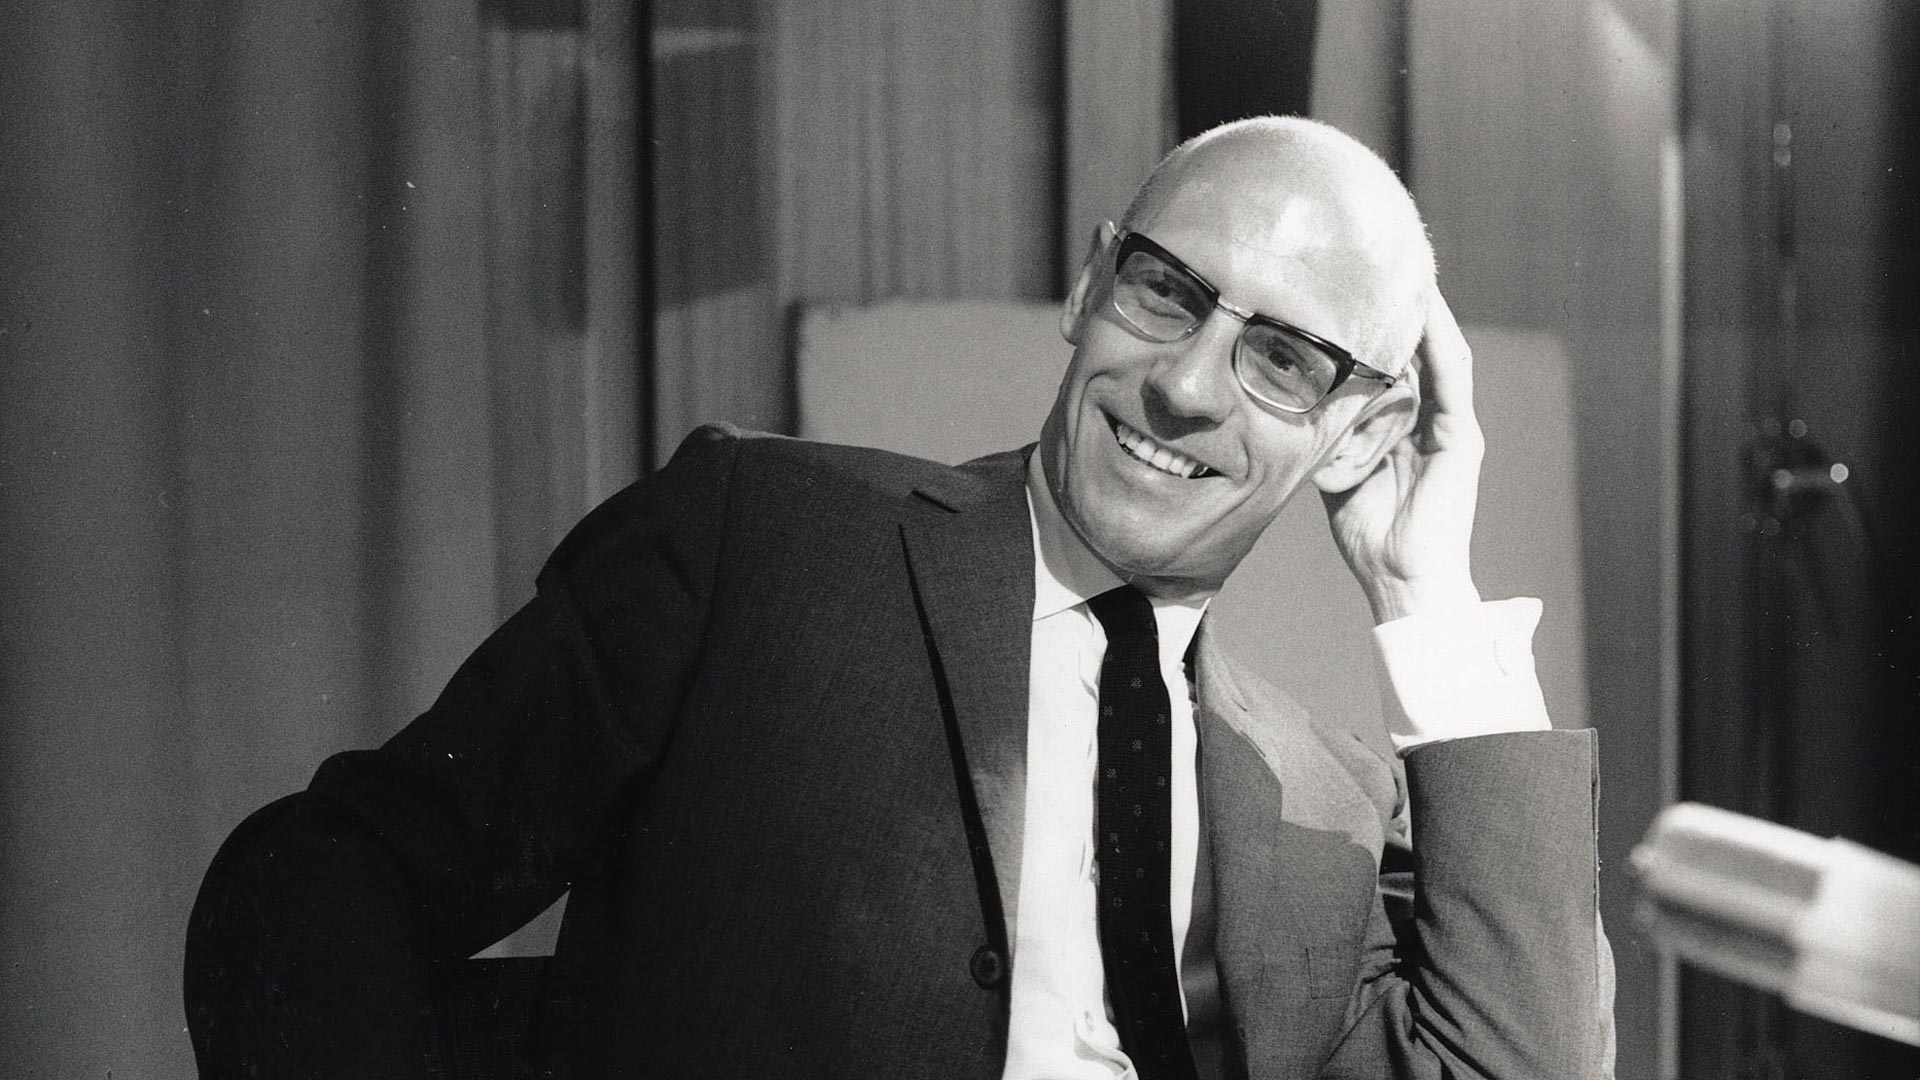 These Are The Upsides Of Going Bald Michel Foucault